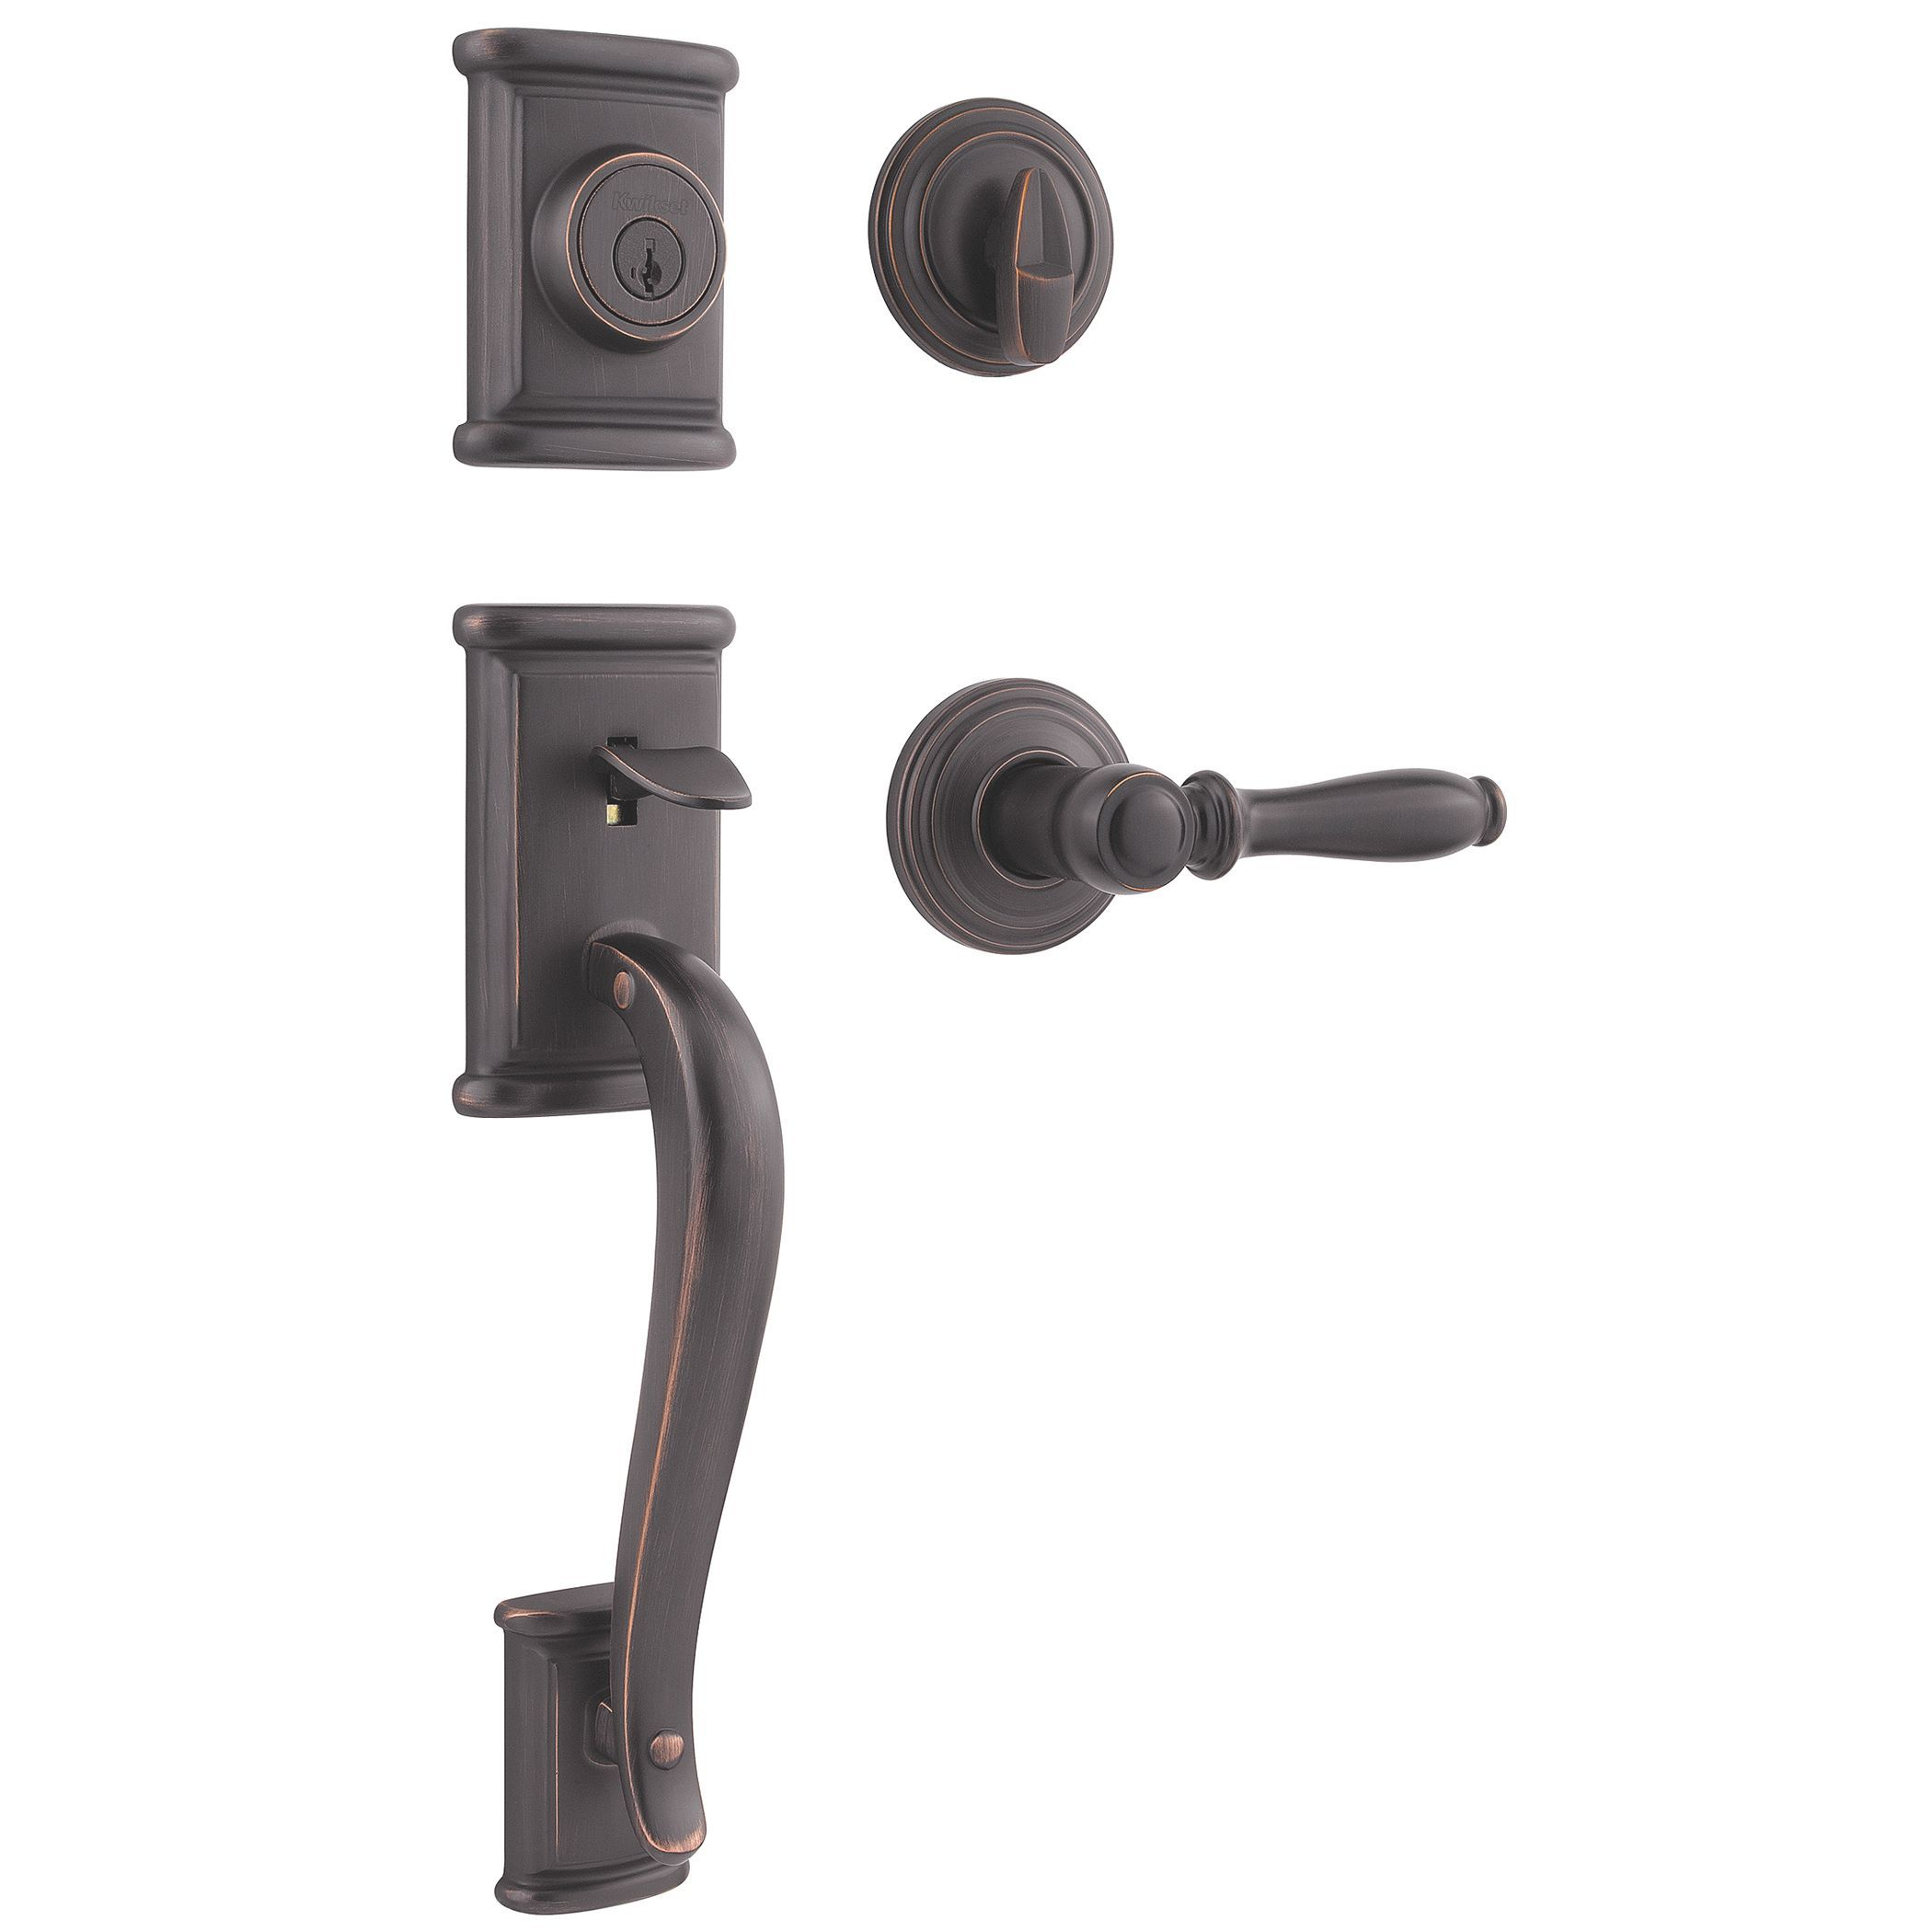 locks entry nickel doors brinks full style keyed exterior knob tulip of kwikset size lock single satin deadbolt and with for images cameron intended door ideas impressive